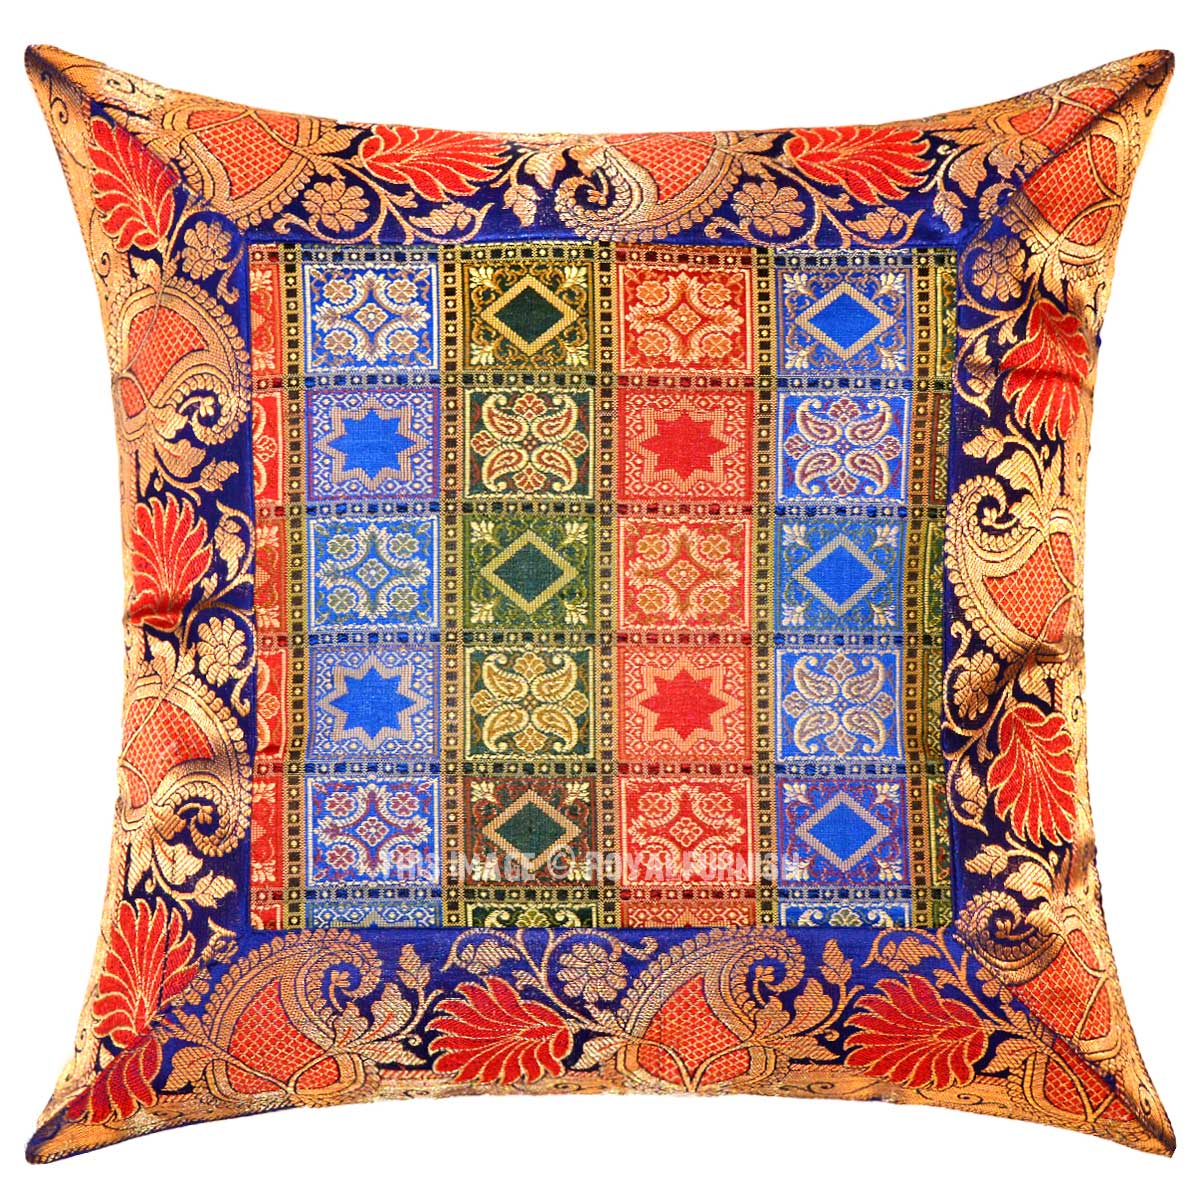 16 Inch Blue Decorative Unique One-Of-A-Kind Silk Brocade Throw Pillow Case - RoyalFurnish.com